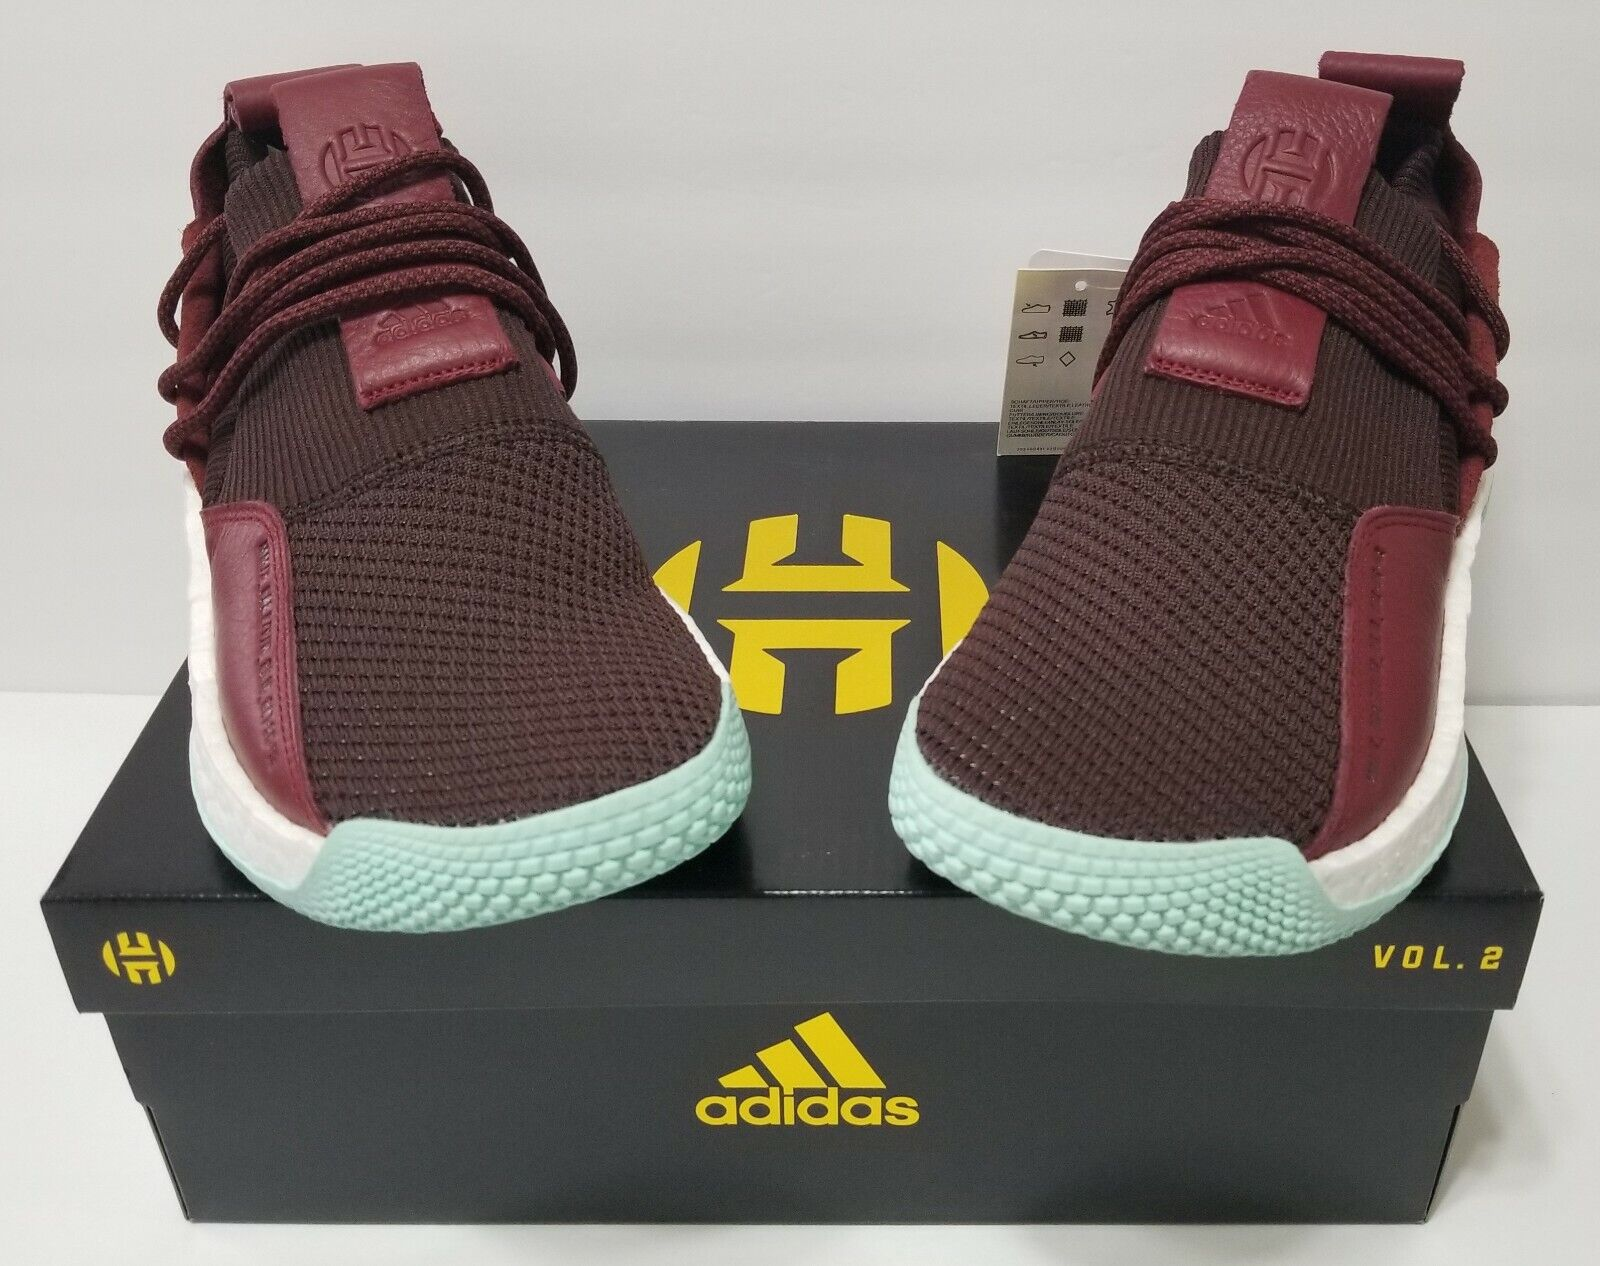 NEW ADIDAS HARDEN LS 2 LACE CG6277 MENS SZ 12 Red Maroon Clear Mint James